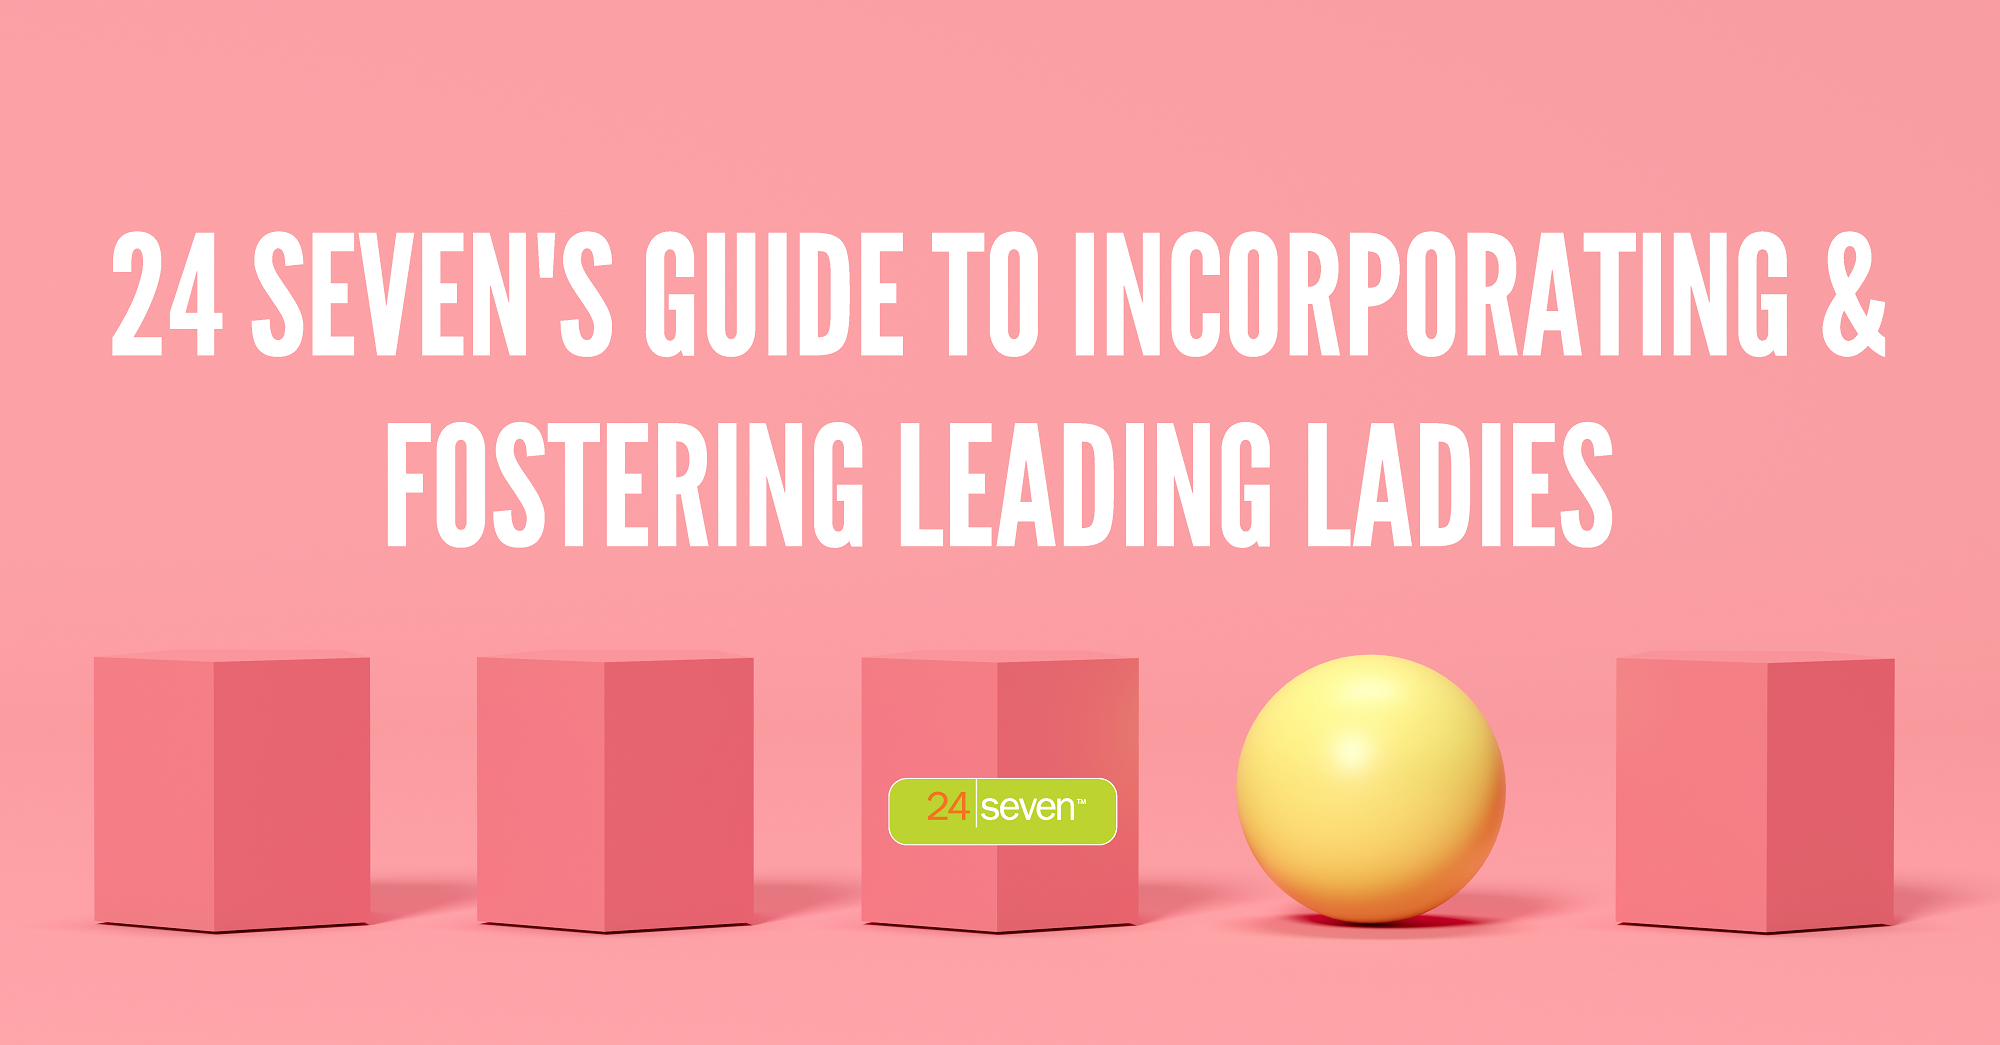 24 Sevens Guide to Incorporating and Fostering Leading Ladies